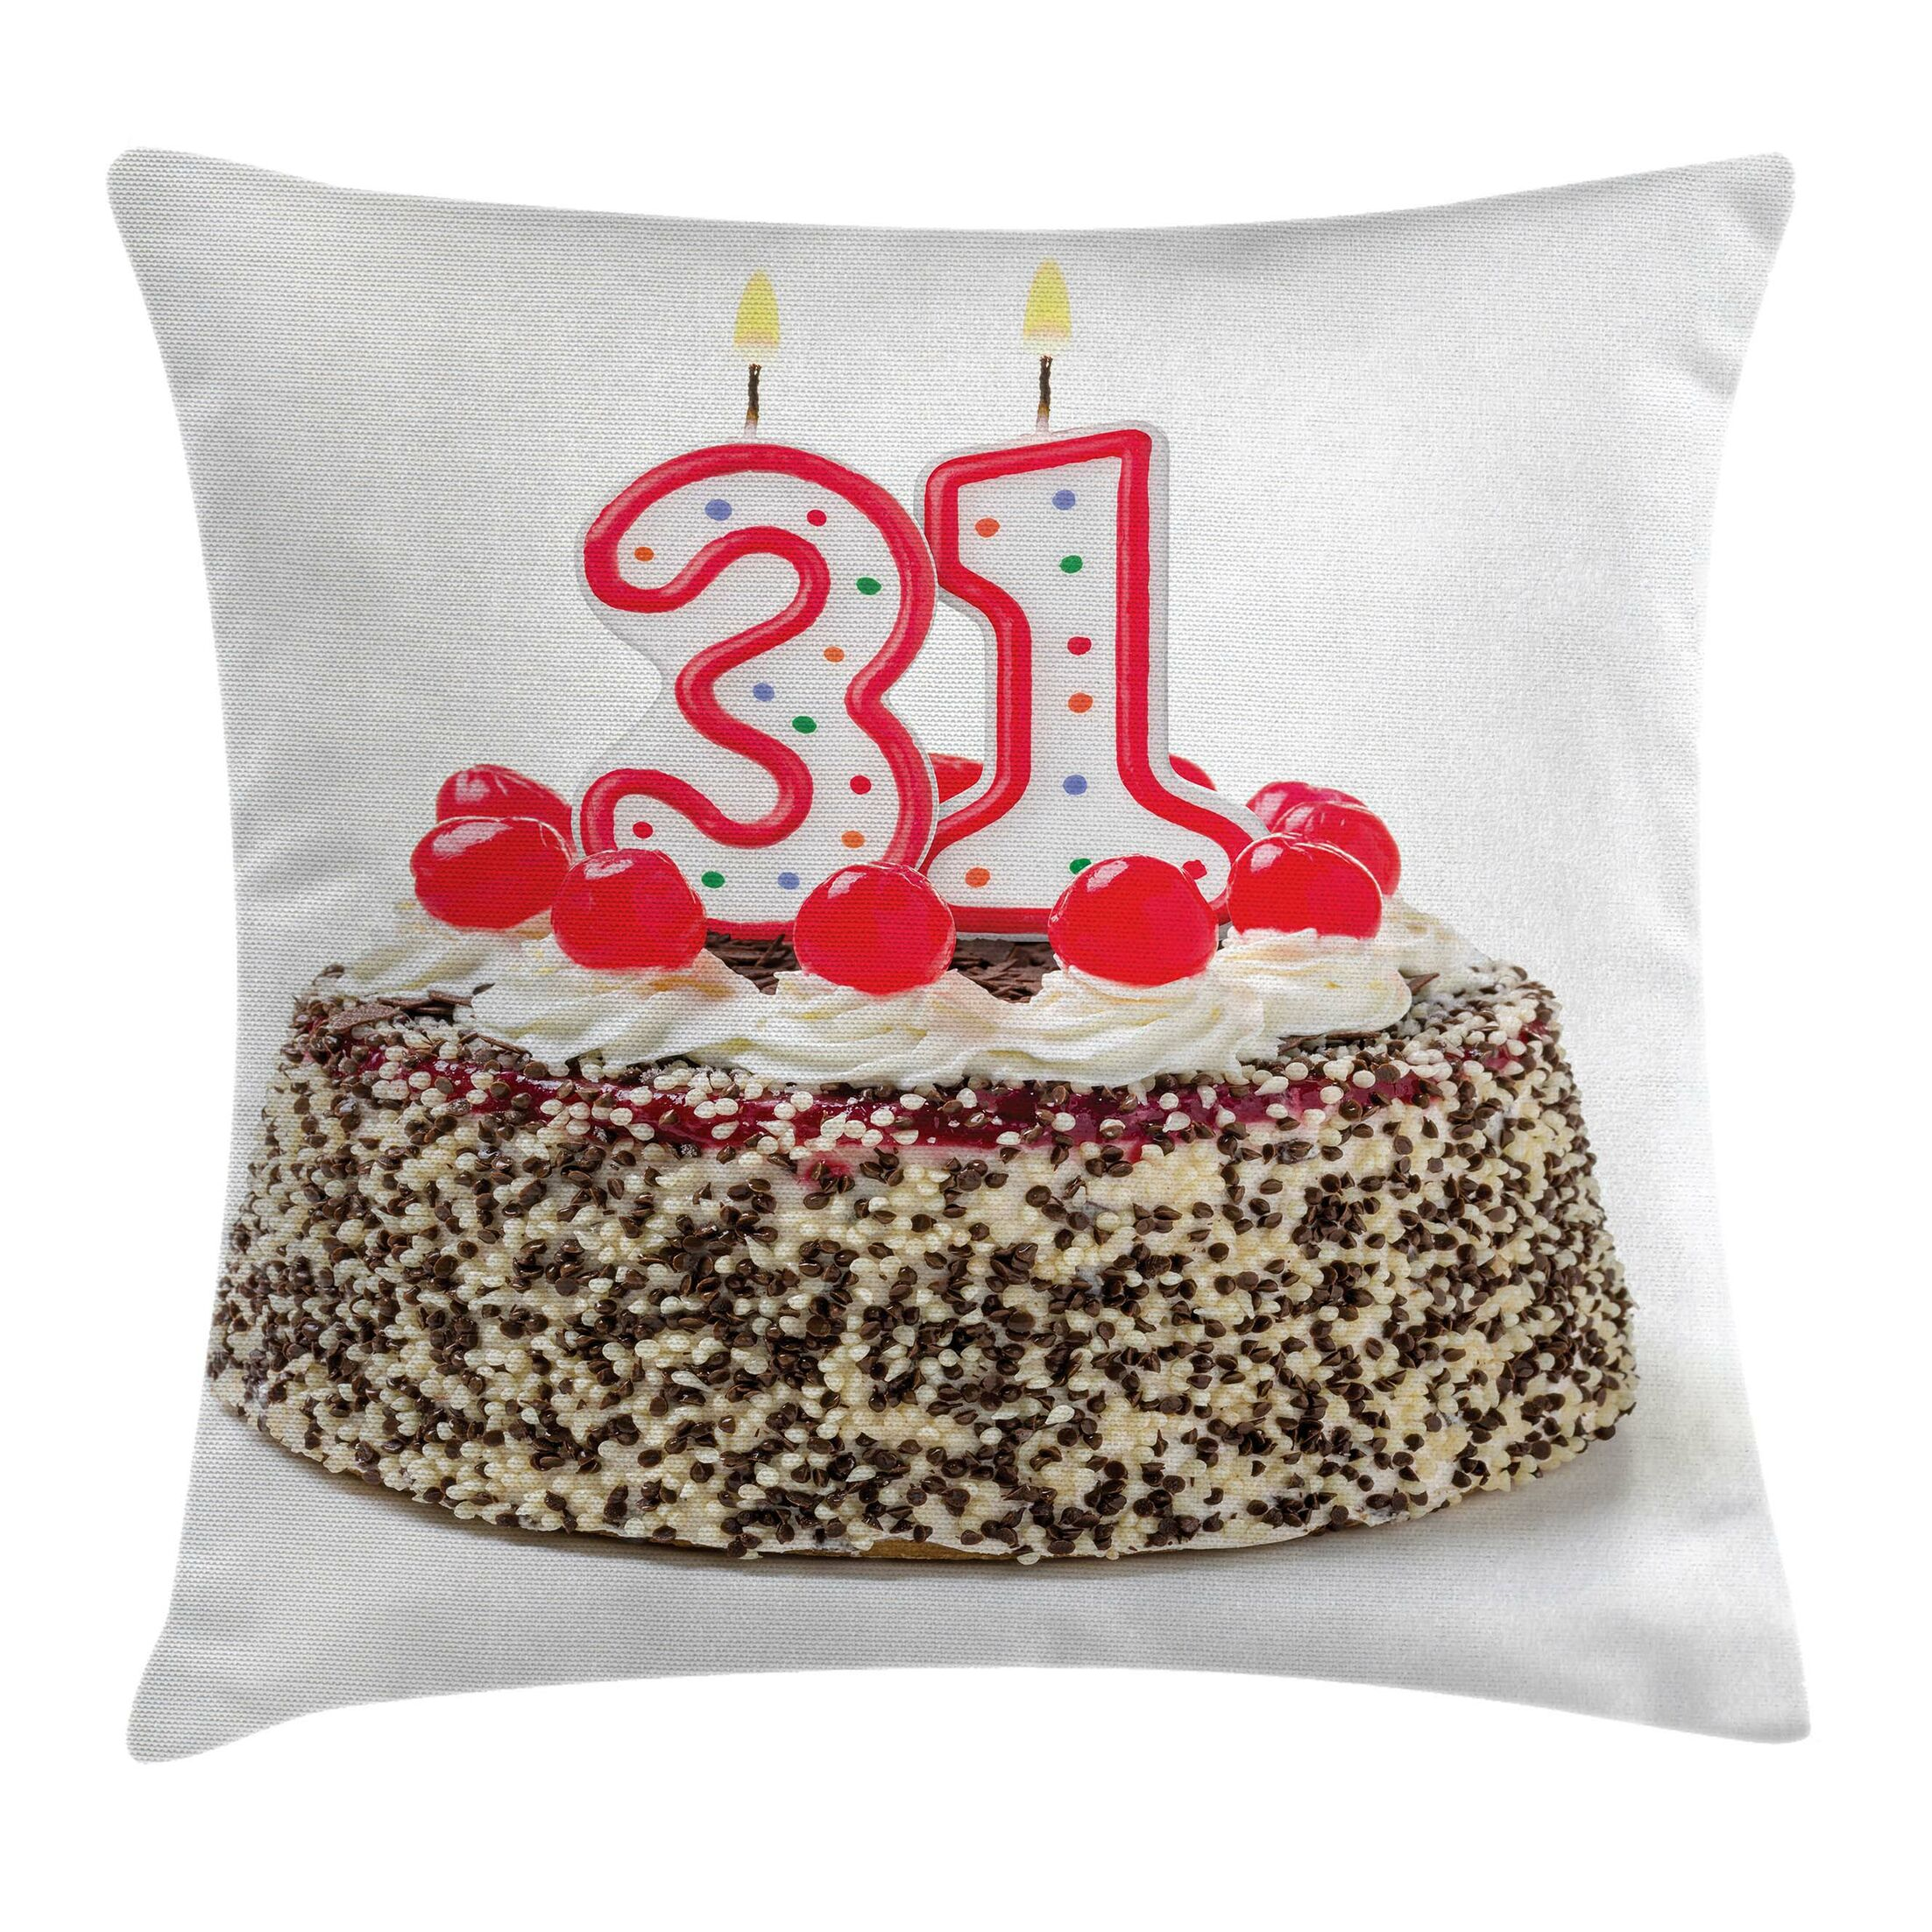 Party Cake Thirty One Candles Square Pillow Cover Size: 20